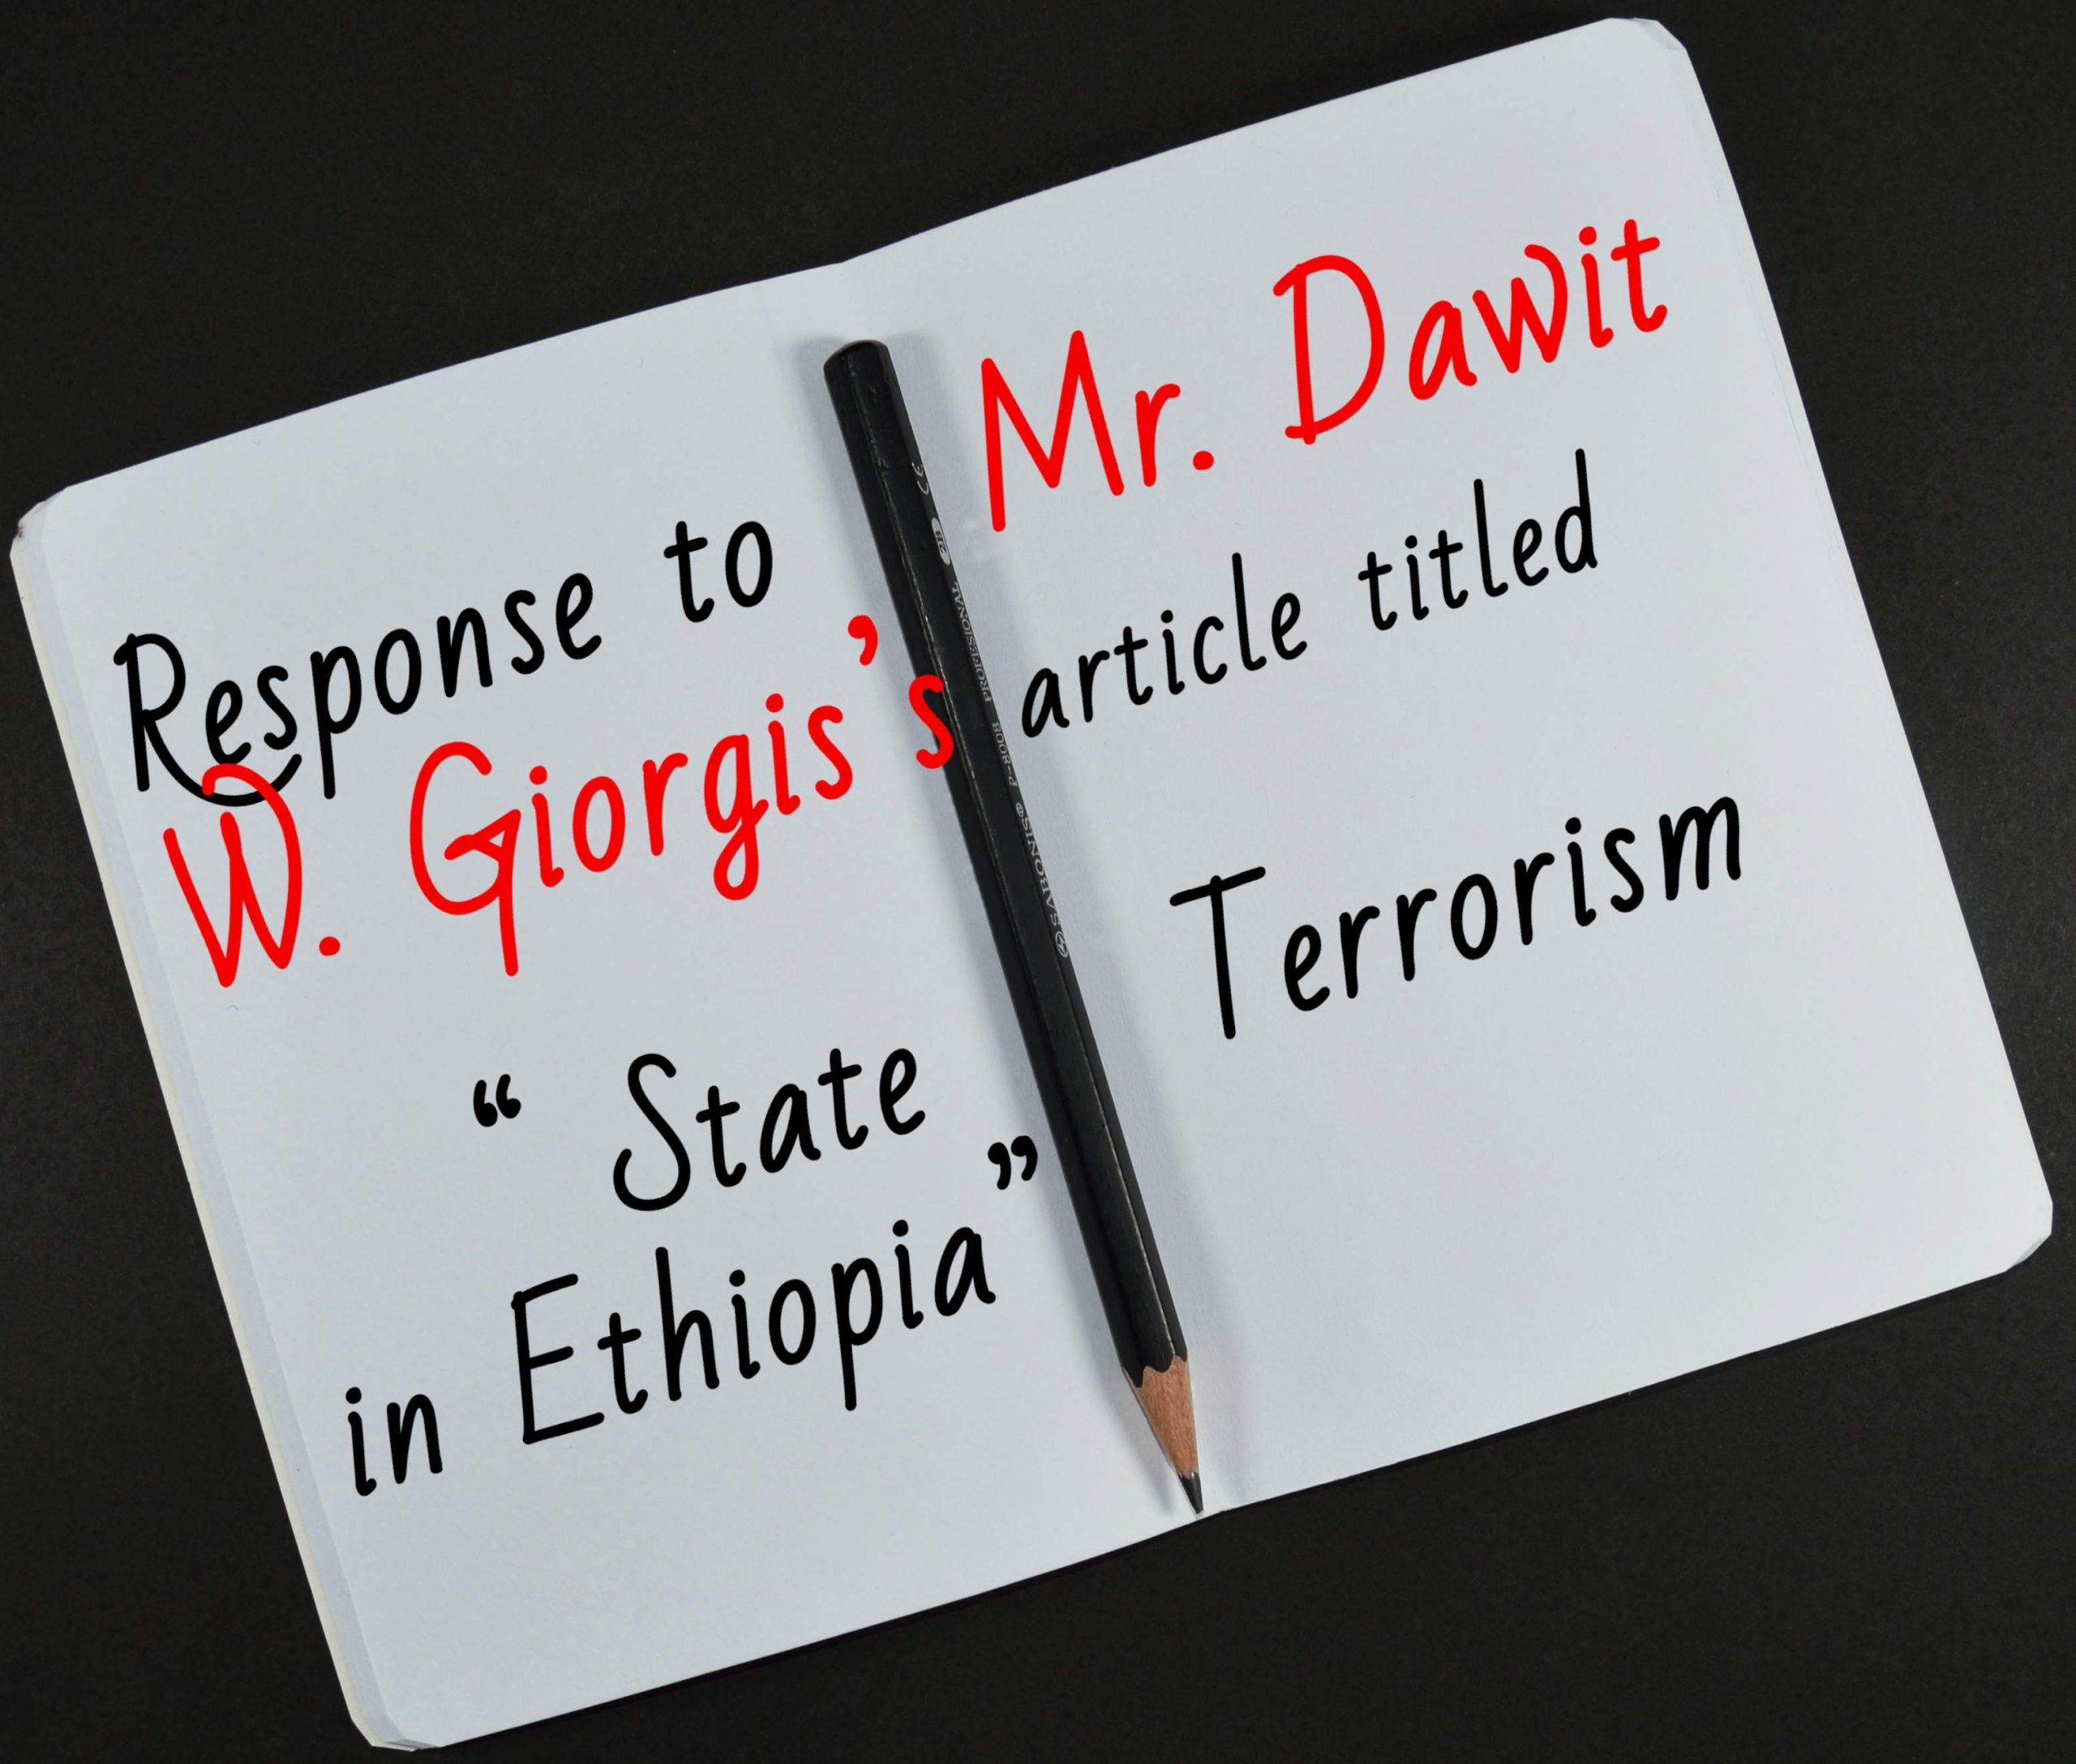 "Response to Mr. Dawit W. Giorgis's article titled ""State Terrorism in Ethiopia"""